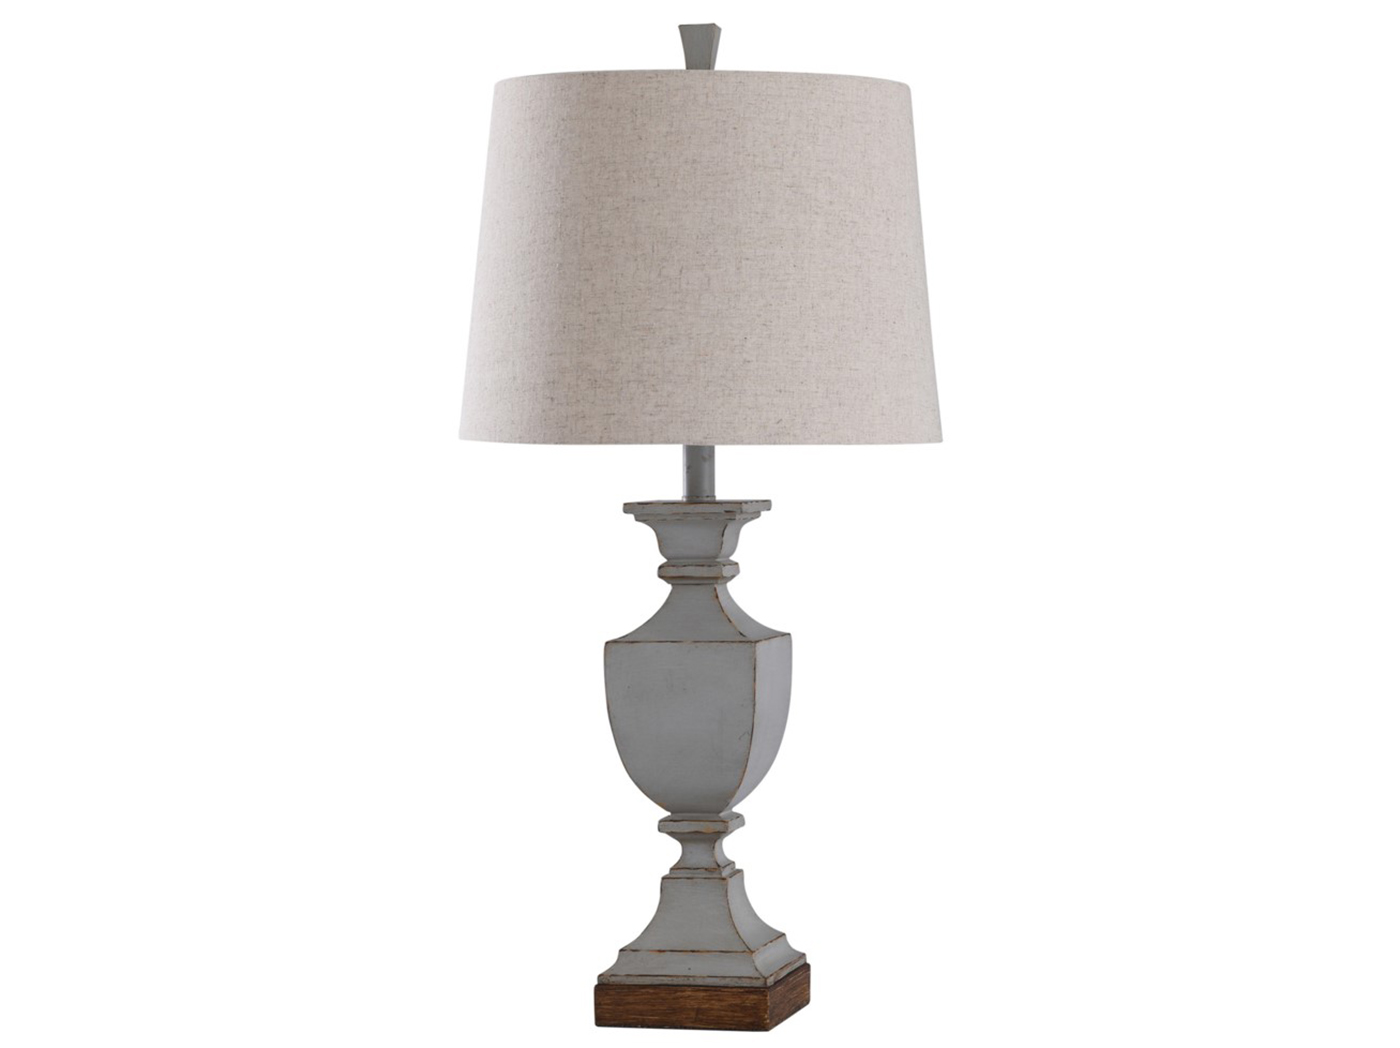 "Antique Gray Farmhouse Table Lamp 30""H"